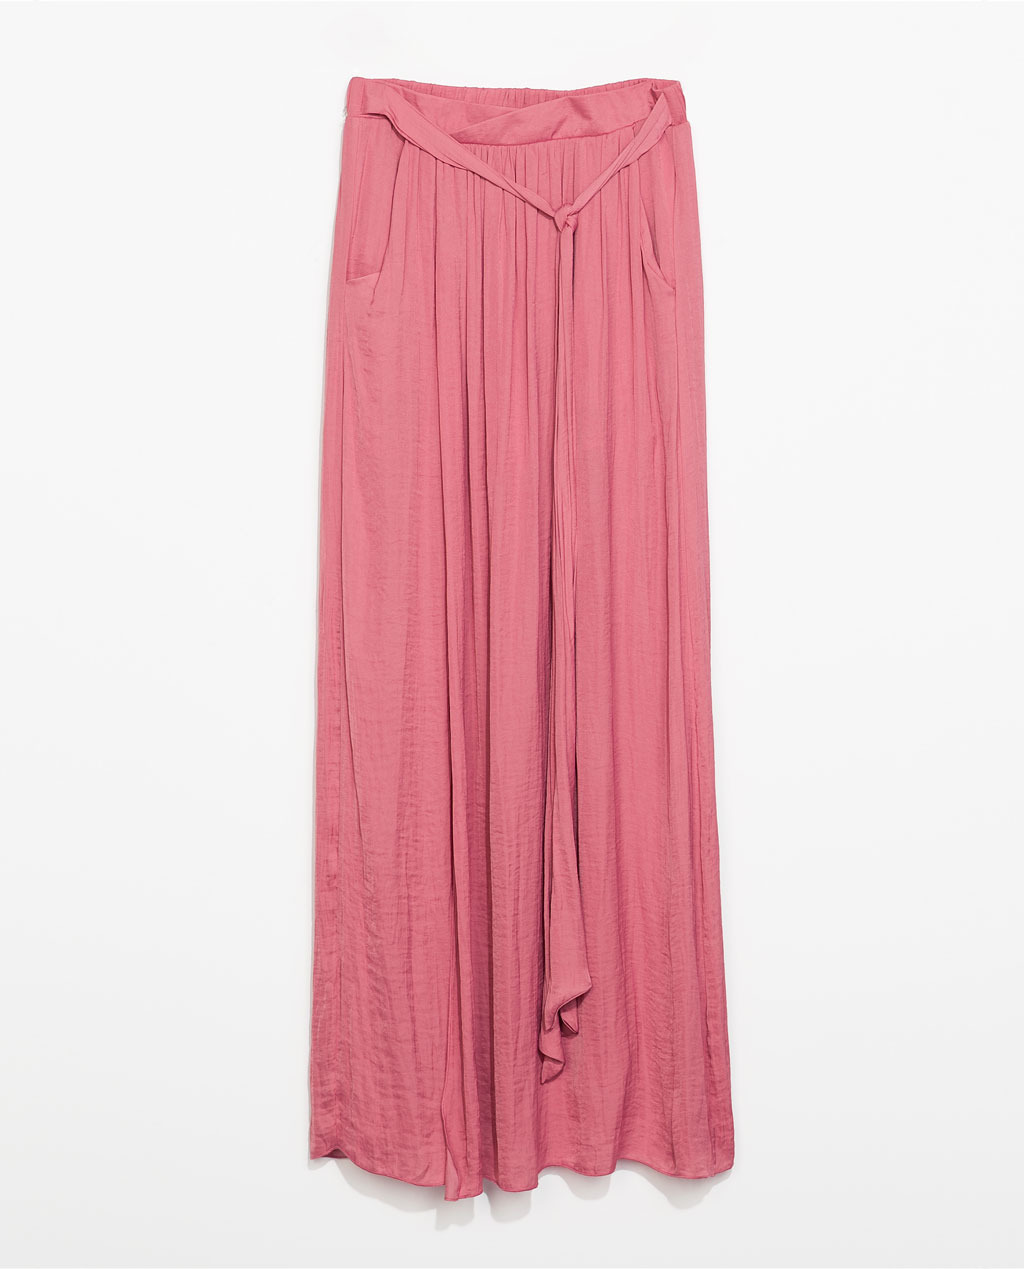 Long Flowing Skirt - pattern: plain; fit: loose/voluminous; waist detail: belted waist/tie at waist/drawstring; waist: mid/regular rise; predominant colour: pink; occasions: casual, holiday; length: floor length; style: maxi skirt; fibres: polyester/polyamide - 100%; hip detail: soft pleats at hip/draping at hip/flared at hip; texture group: sheer fabrics/chiffon/organza etc.; trends: sorbet shades; season: s/s 2014